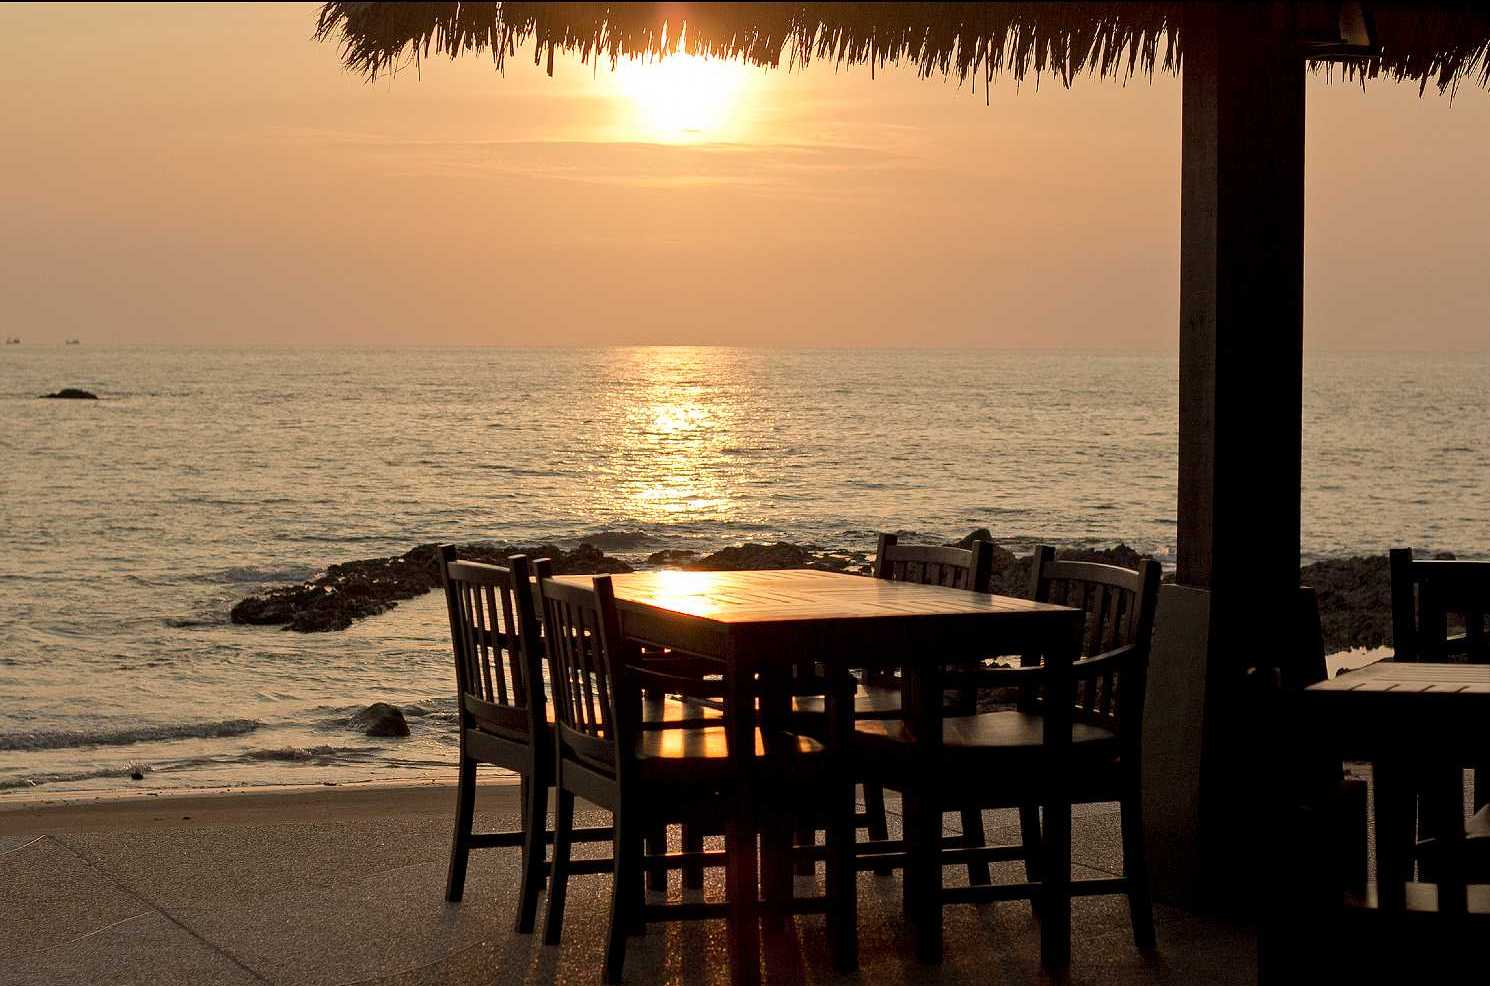 Restaurant by the sea overlooking the sunset